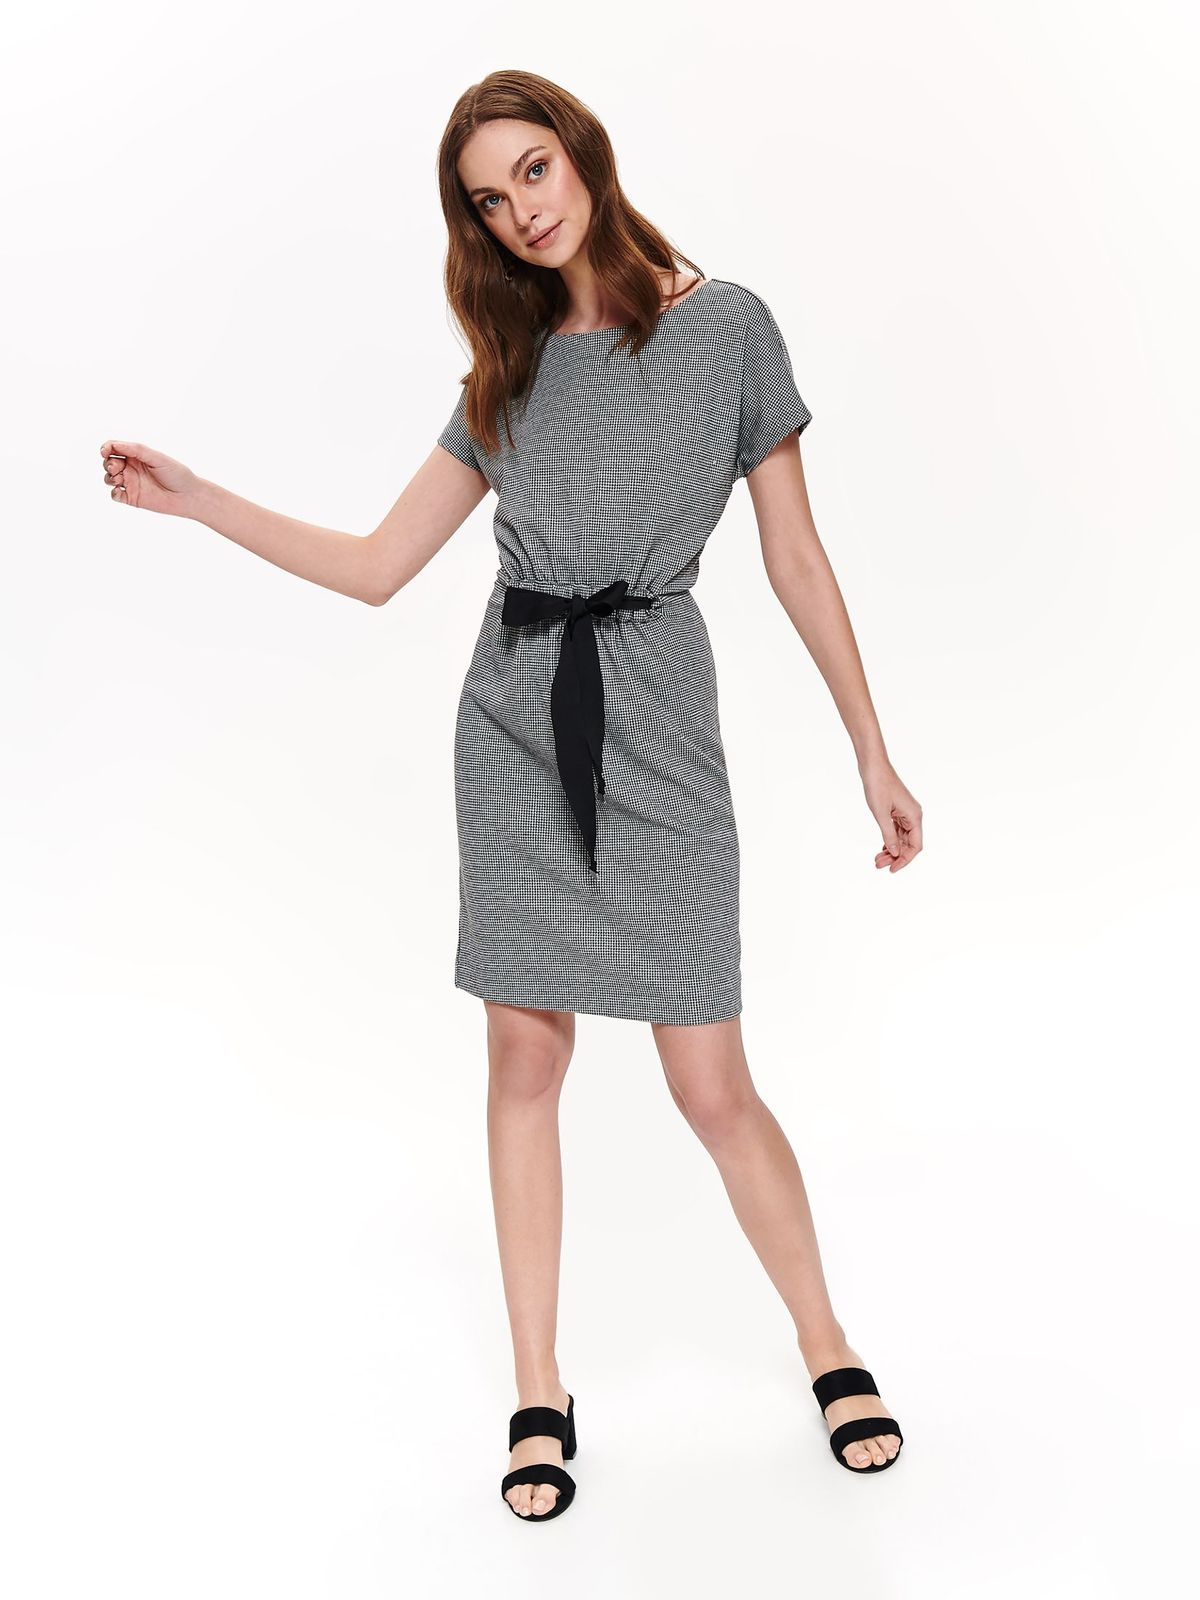 Top Secret black daily dress short sleeve airy fabric is fastened around the waist with a ribbon